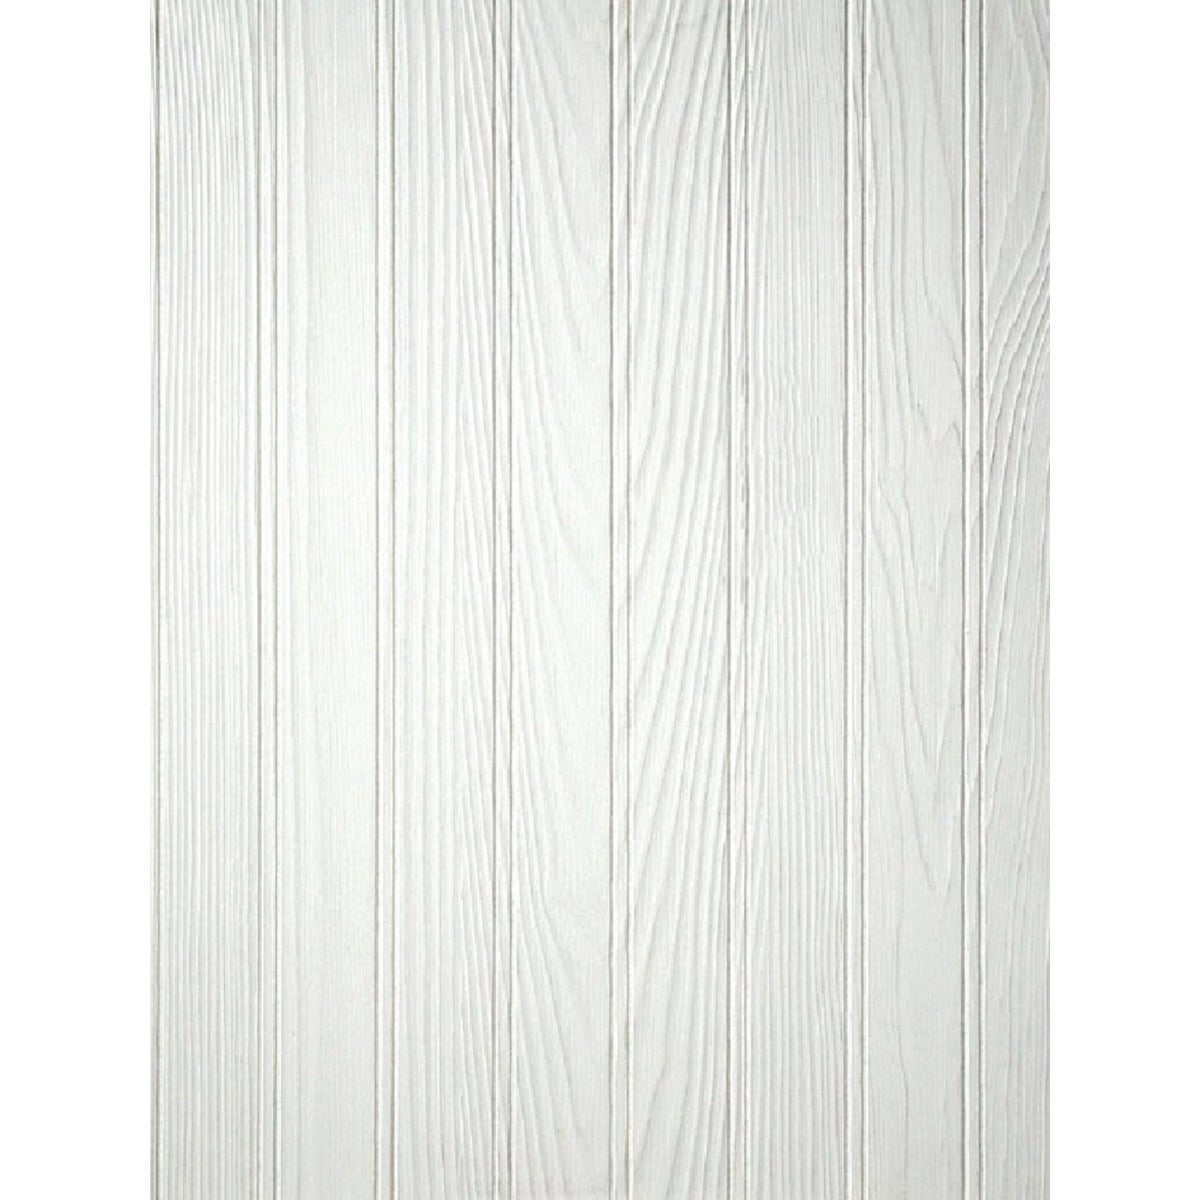 "3/16"" WH PAINTABLE PANEL - 163 by Dpi Decorative Panel"